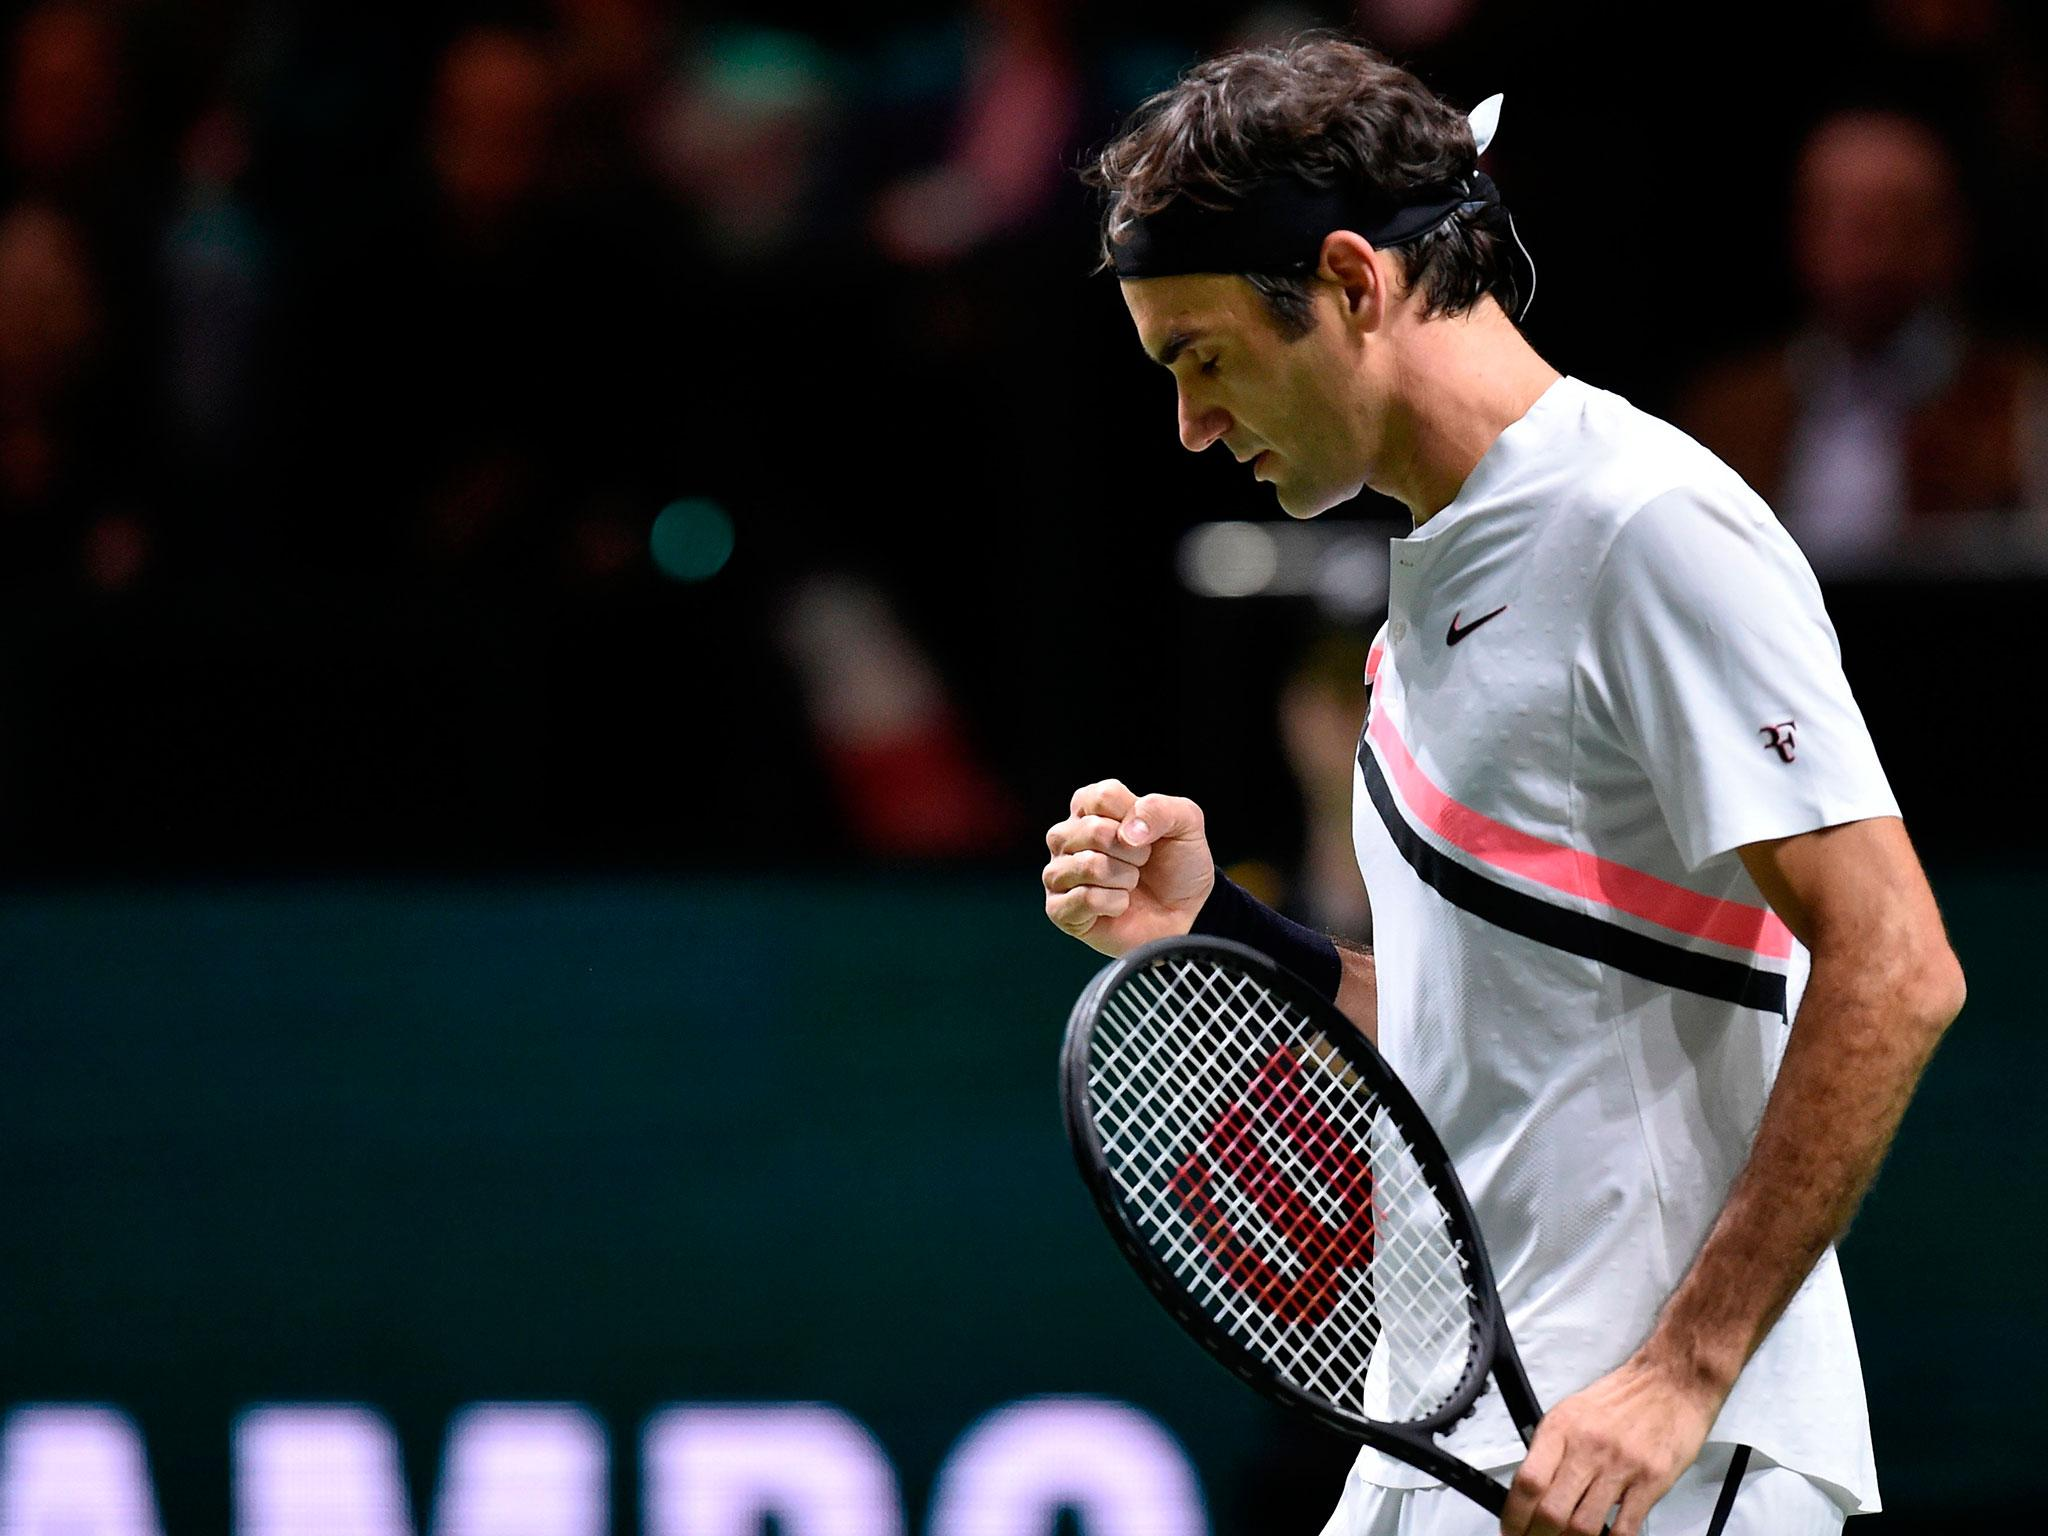 Roger Federer Becomes Oldest World No 1 In History After Victory In Rotterdam The Independent The Independent